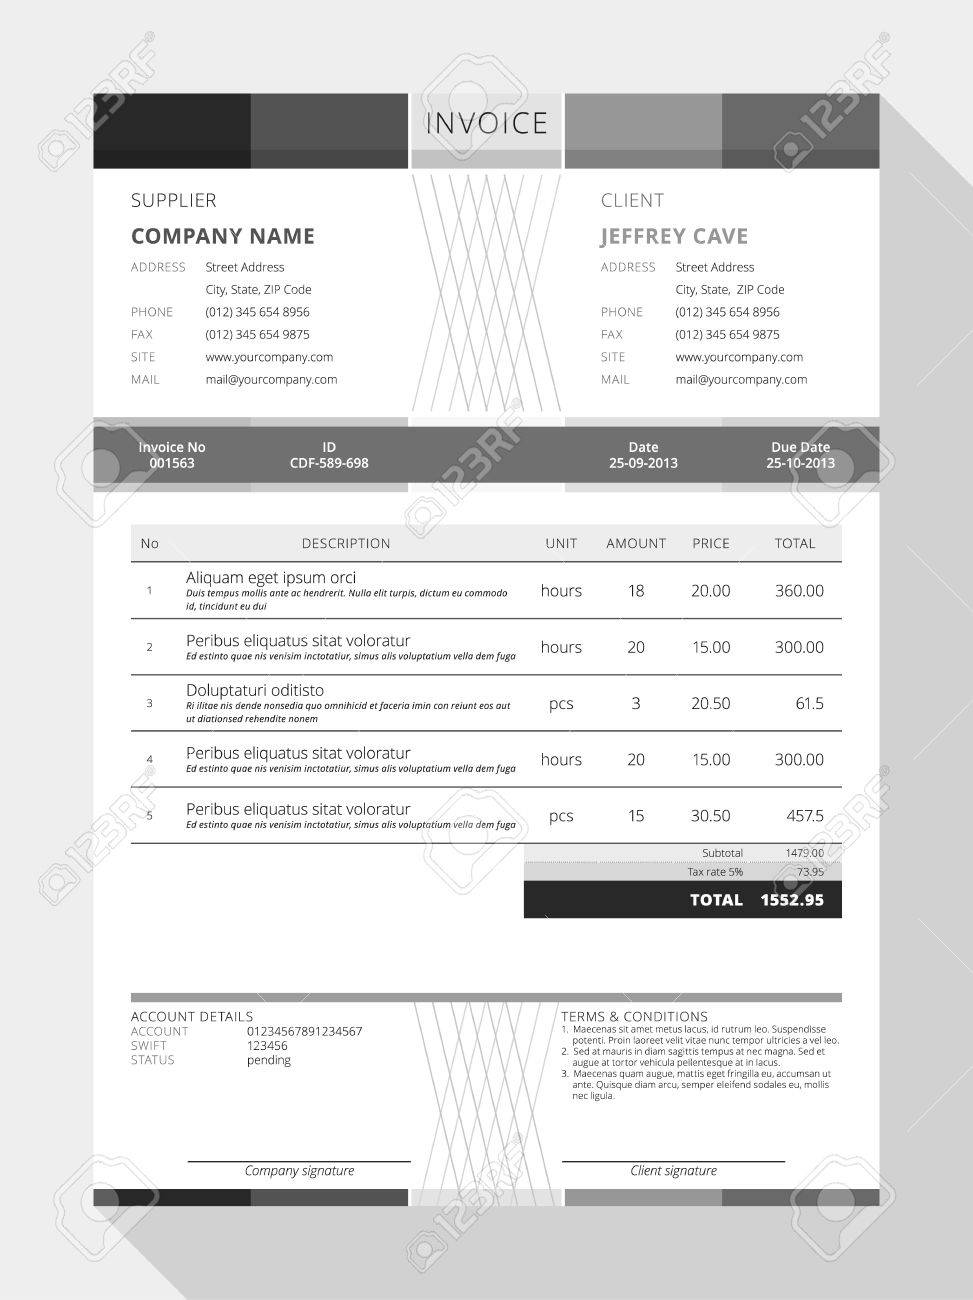 Carsforlessus  Unusual Design An Invoice  Professional Graphic Design Invoice  With Great Vector Customizable Invoice Form Template Design Vector   Design An Invoice With Cute Ato Tax Invoice Template Also Free Invoices Software In Addition Igf Invoice Finance And Express Invoice Free Version As Well As How To Do An Invoice For Work Additionally Invoice Template Services From Happytomco With Carsforlessus  Great Design An Invoice  Professional Graphic Design Invoice  With Cute Vector Customizable Invoice Form Template Design Vector   Design An Invoice And Unusual Ato Tax Invoice Template Also Free Invoices Software In Addition Igf Invoice Finance From Happytomco